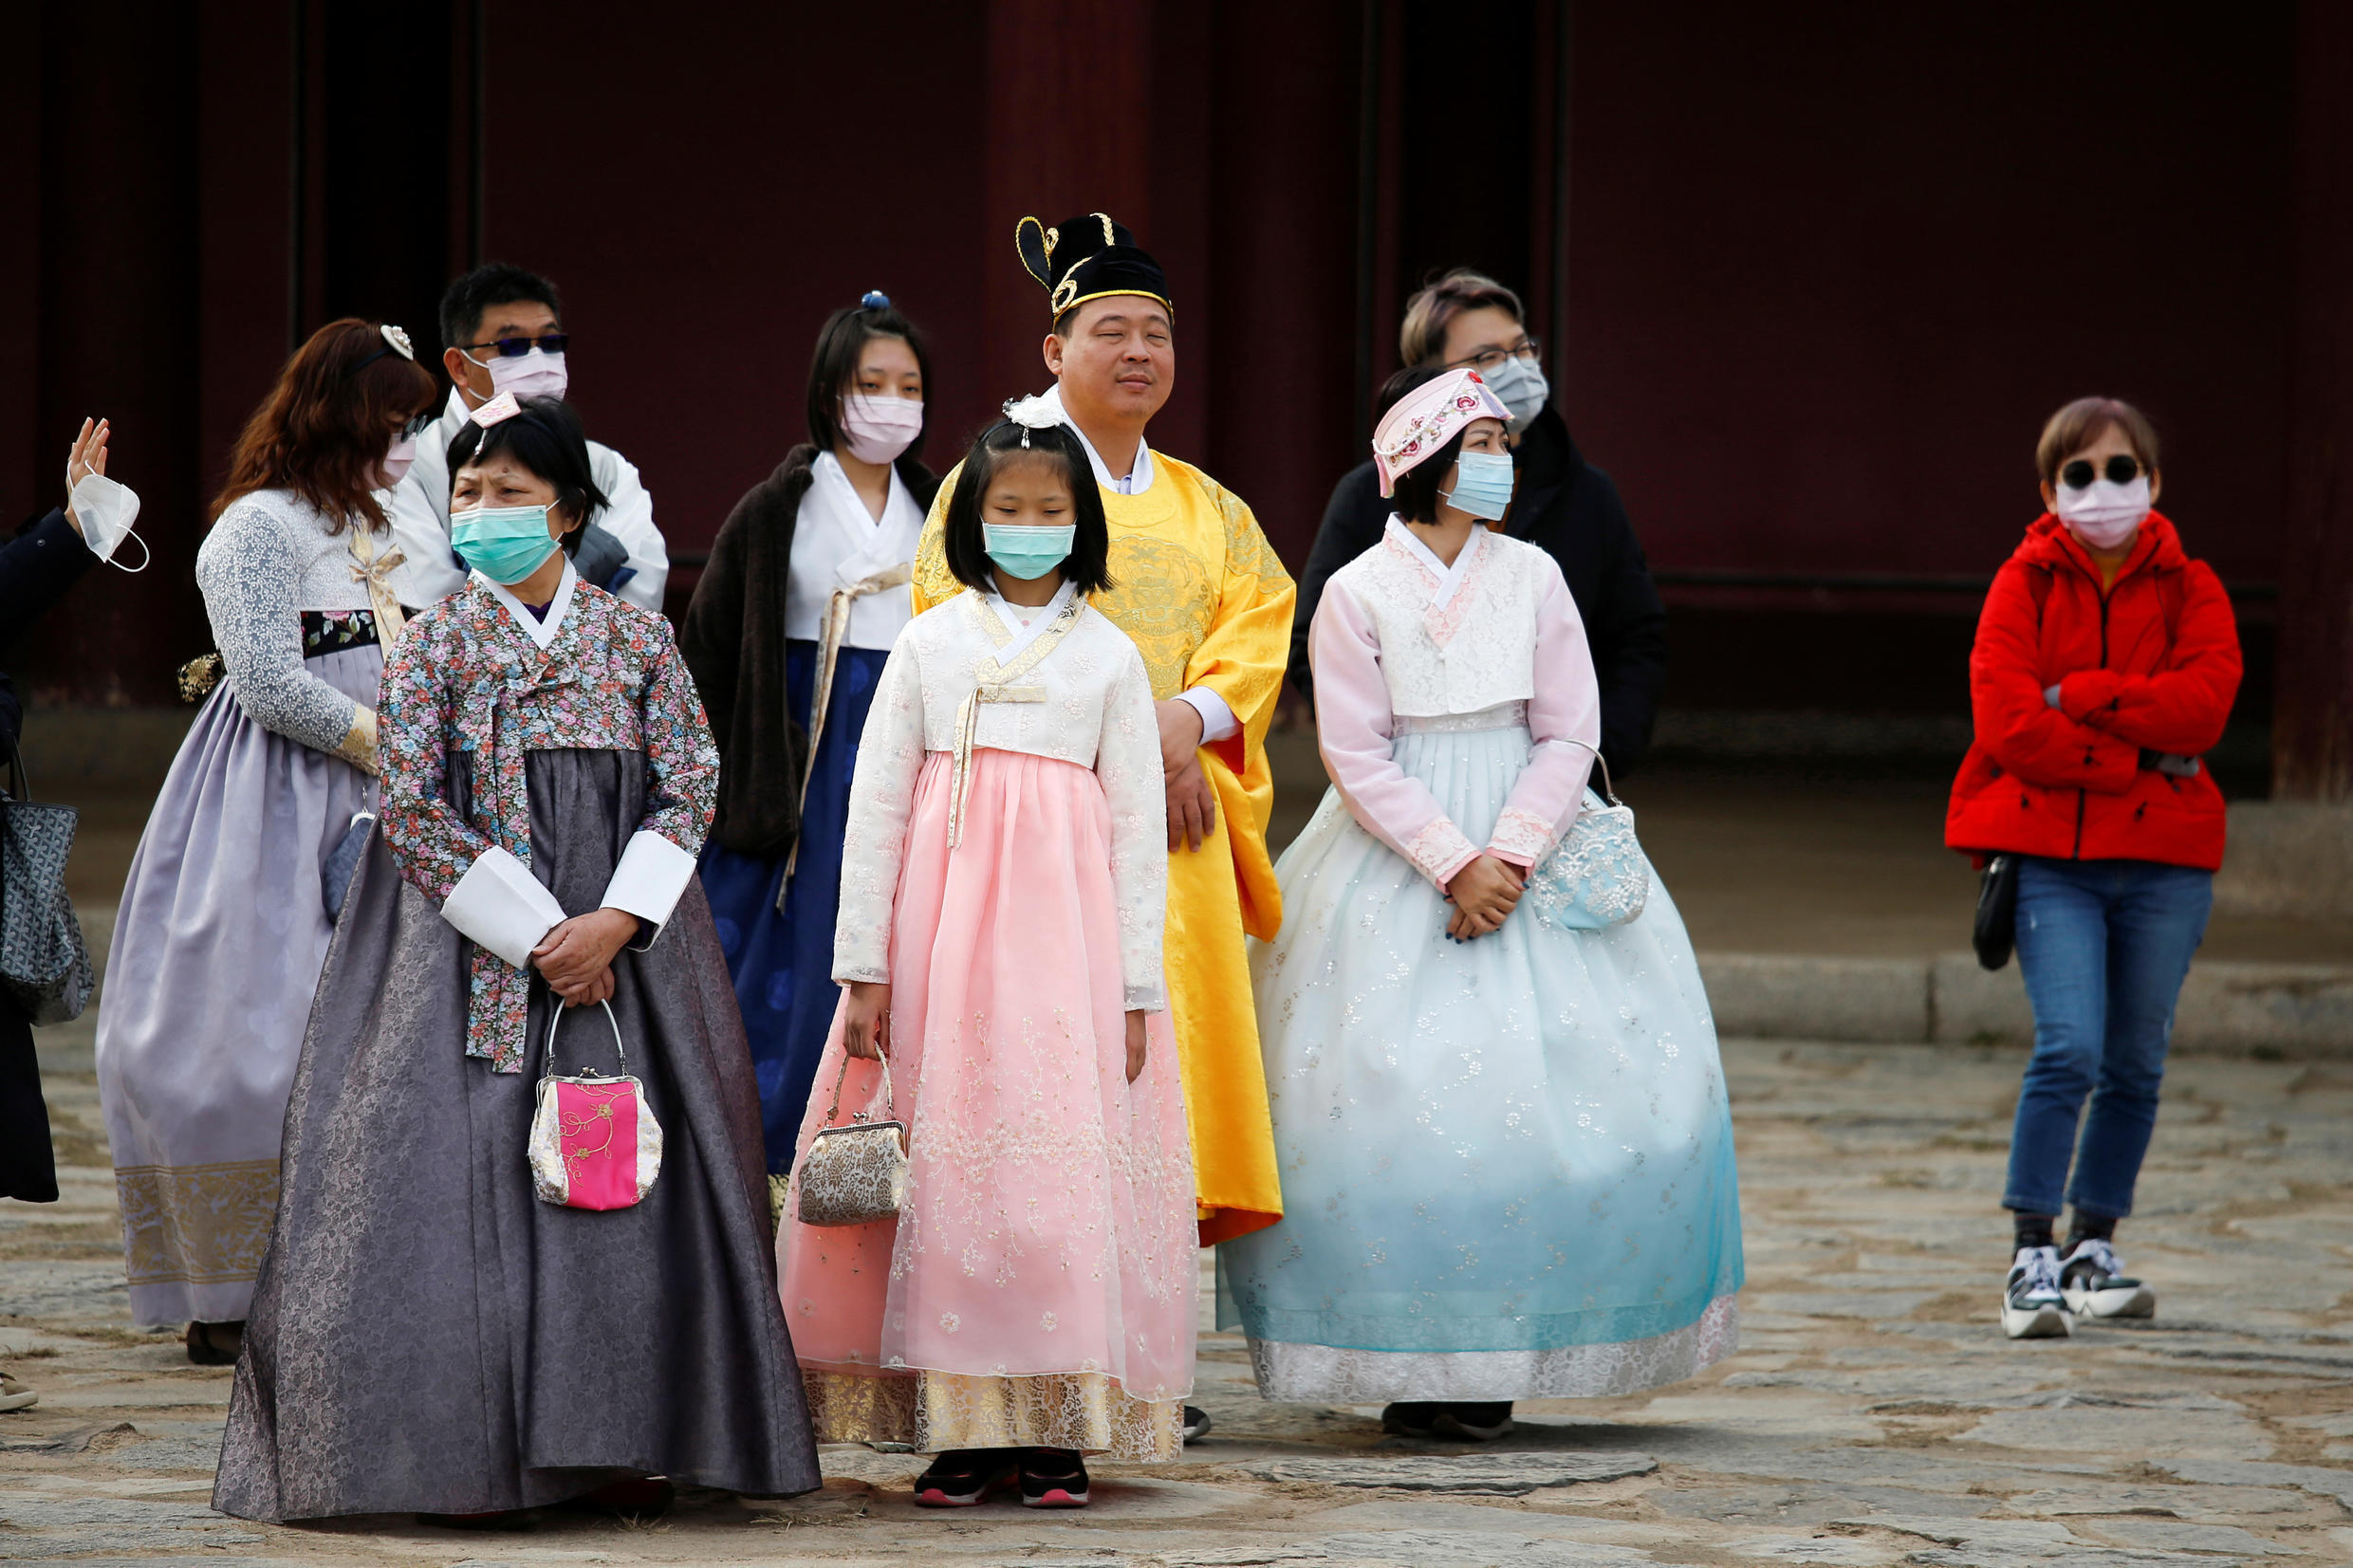 2020-01-29T093549Z_418878470_RC2LPE9LAYSO_RTRMADP_3_CHINA-HEALTH-SOUTHKOREA